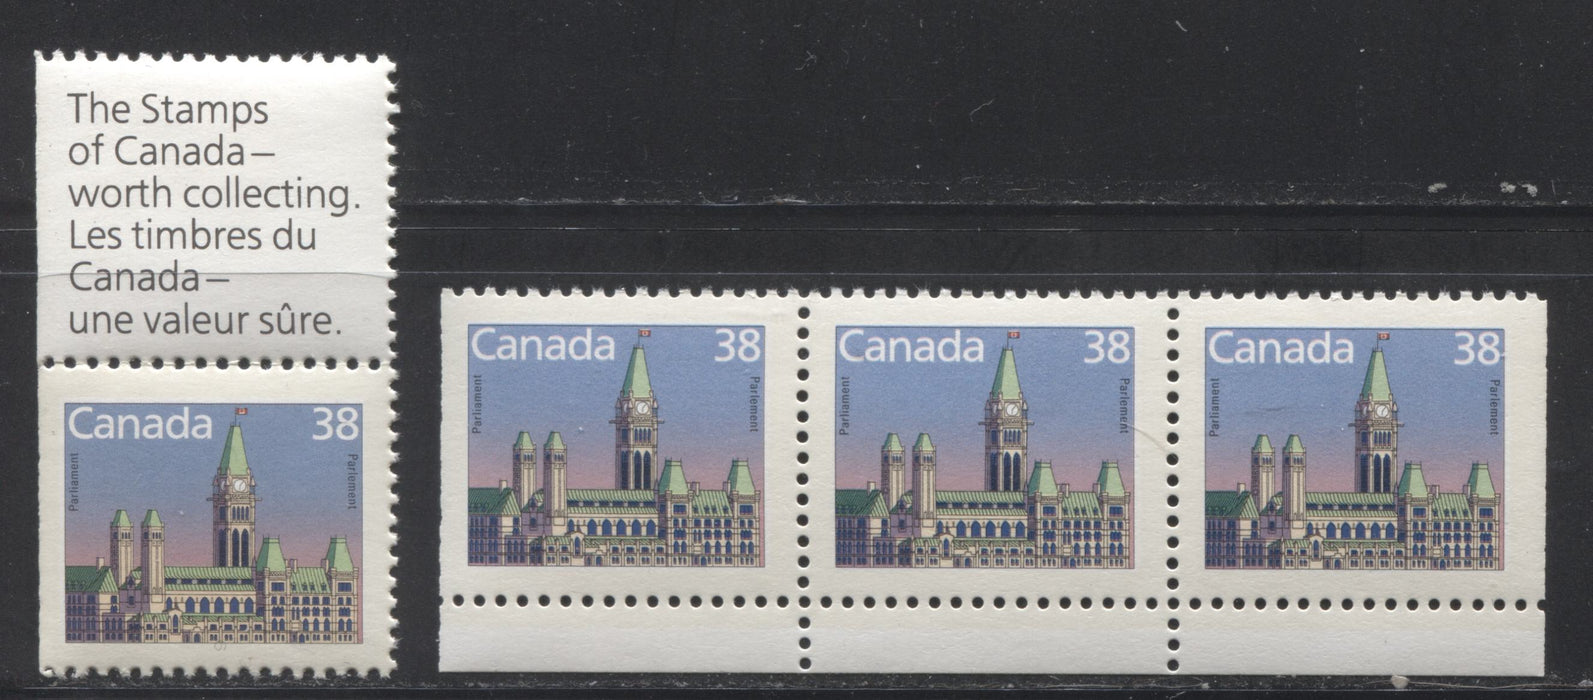 Canada #1165as 38c Parliament Buildings 1988-1991 Wildlife and Architecture Issue, a VFNH Stamp-Label Pair and Strip of 3 From the Large Booklet, NF/DF Slater Paper